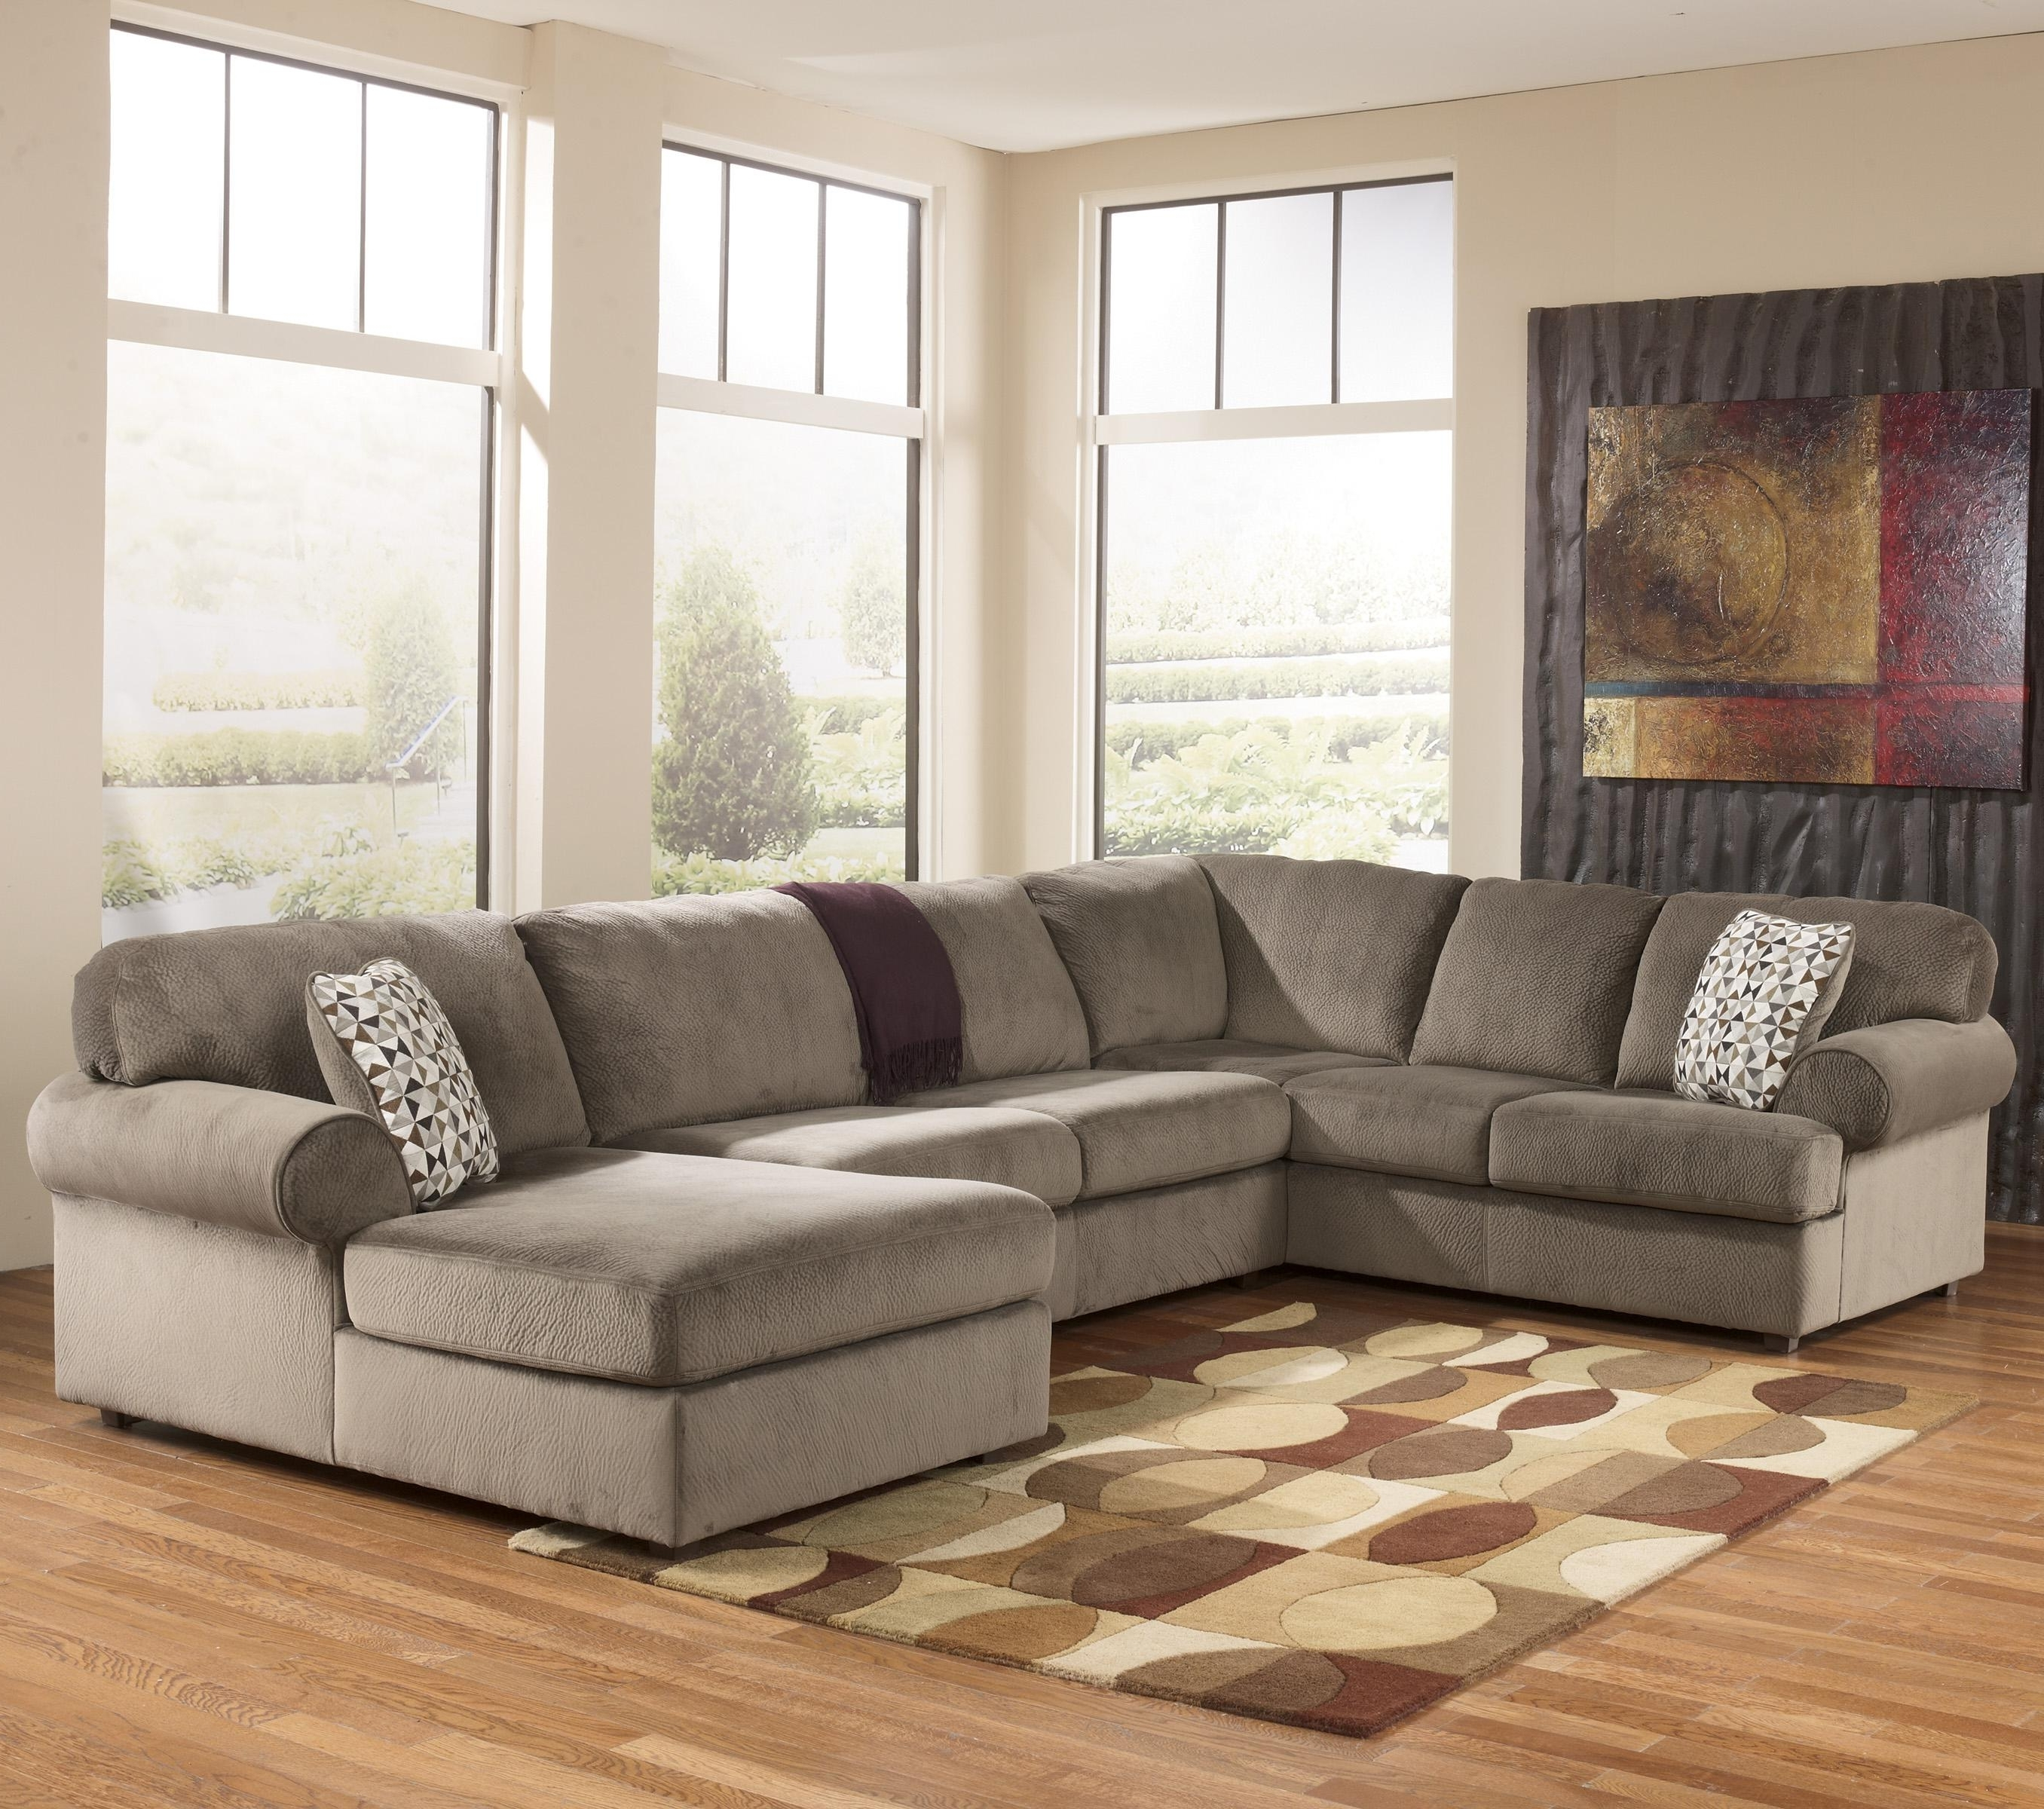 Kansas City Mo Sectional Sofas In Popular Signature Designashley Jessa Place – Dune Casual Sectional (View 4 of 15)